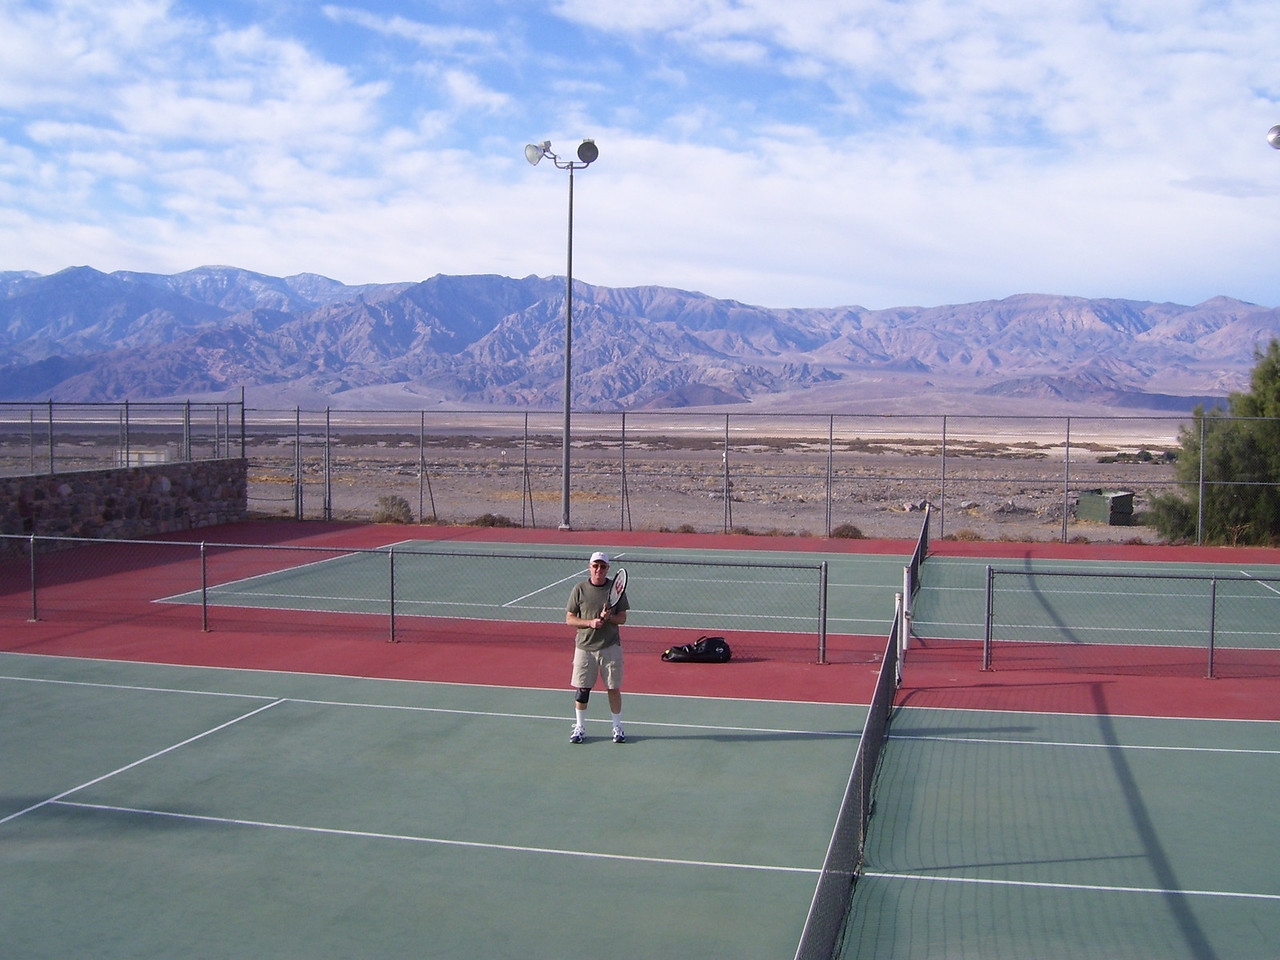 We used the tennis courts and the hot-spring-fed pool at Furnace Creek Inn almost every day. It's was nice having our friends stay in the pool side bungalow!